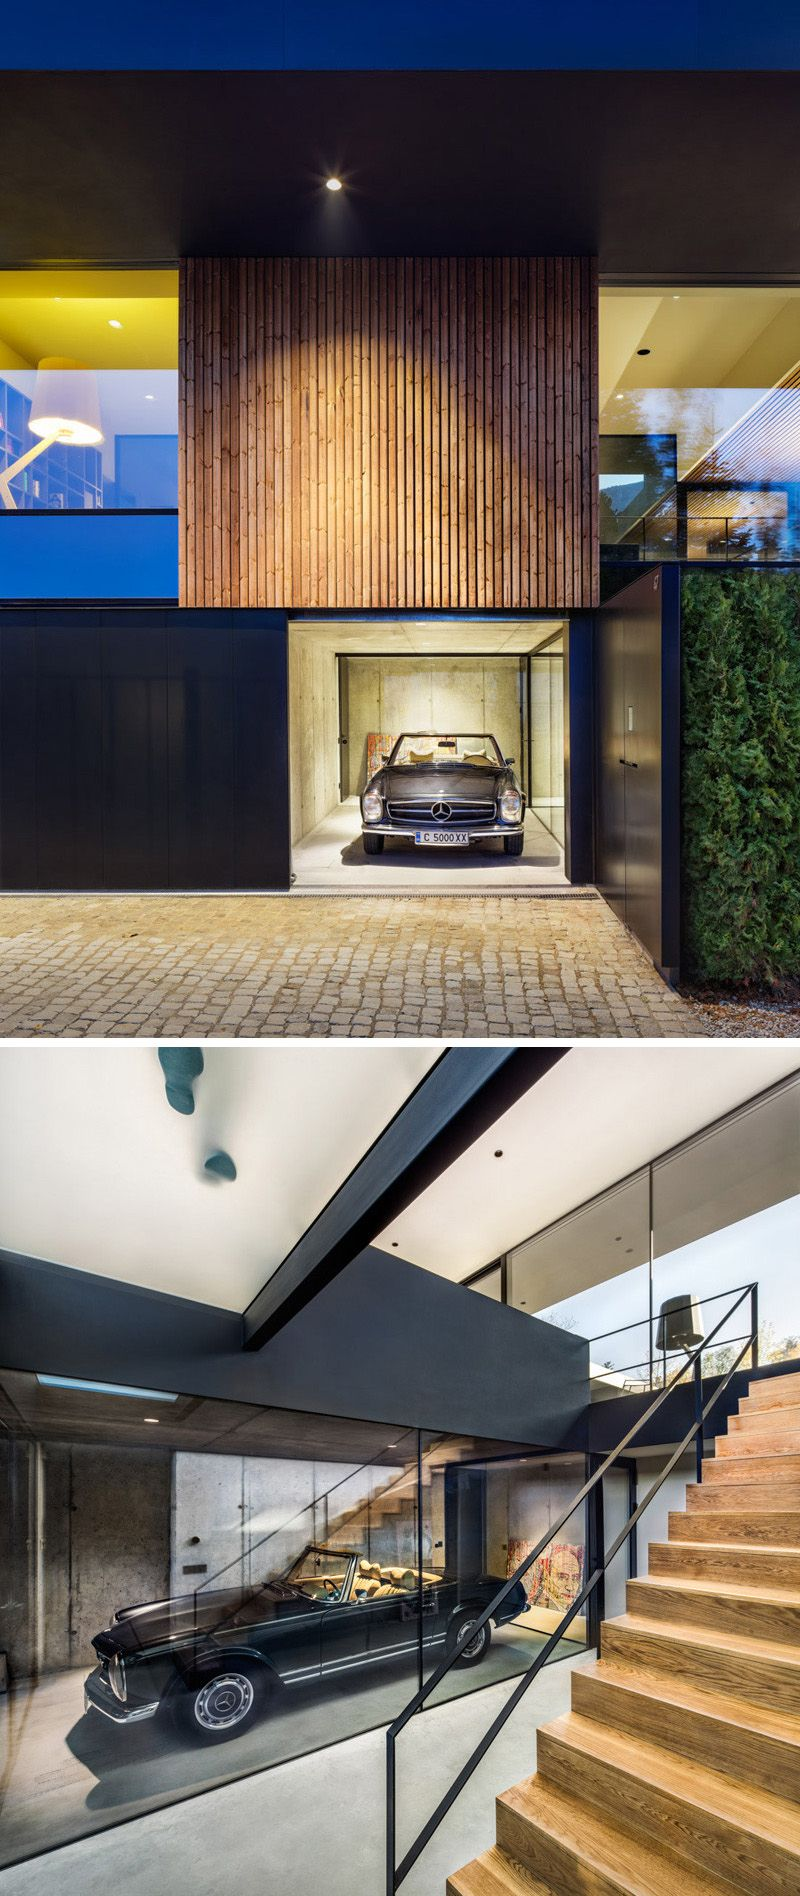 At The Side Of This Home Is A Single Car Garage The Garage Is More Like A Showcase Of The Home Owner S Car Clearly Visible Through The Gla Garage Interior Garage